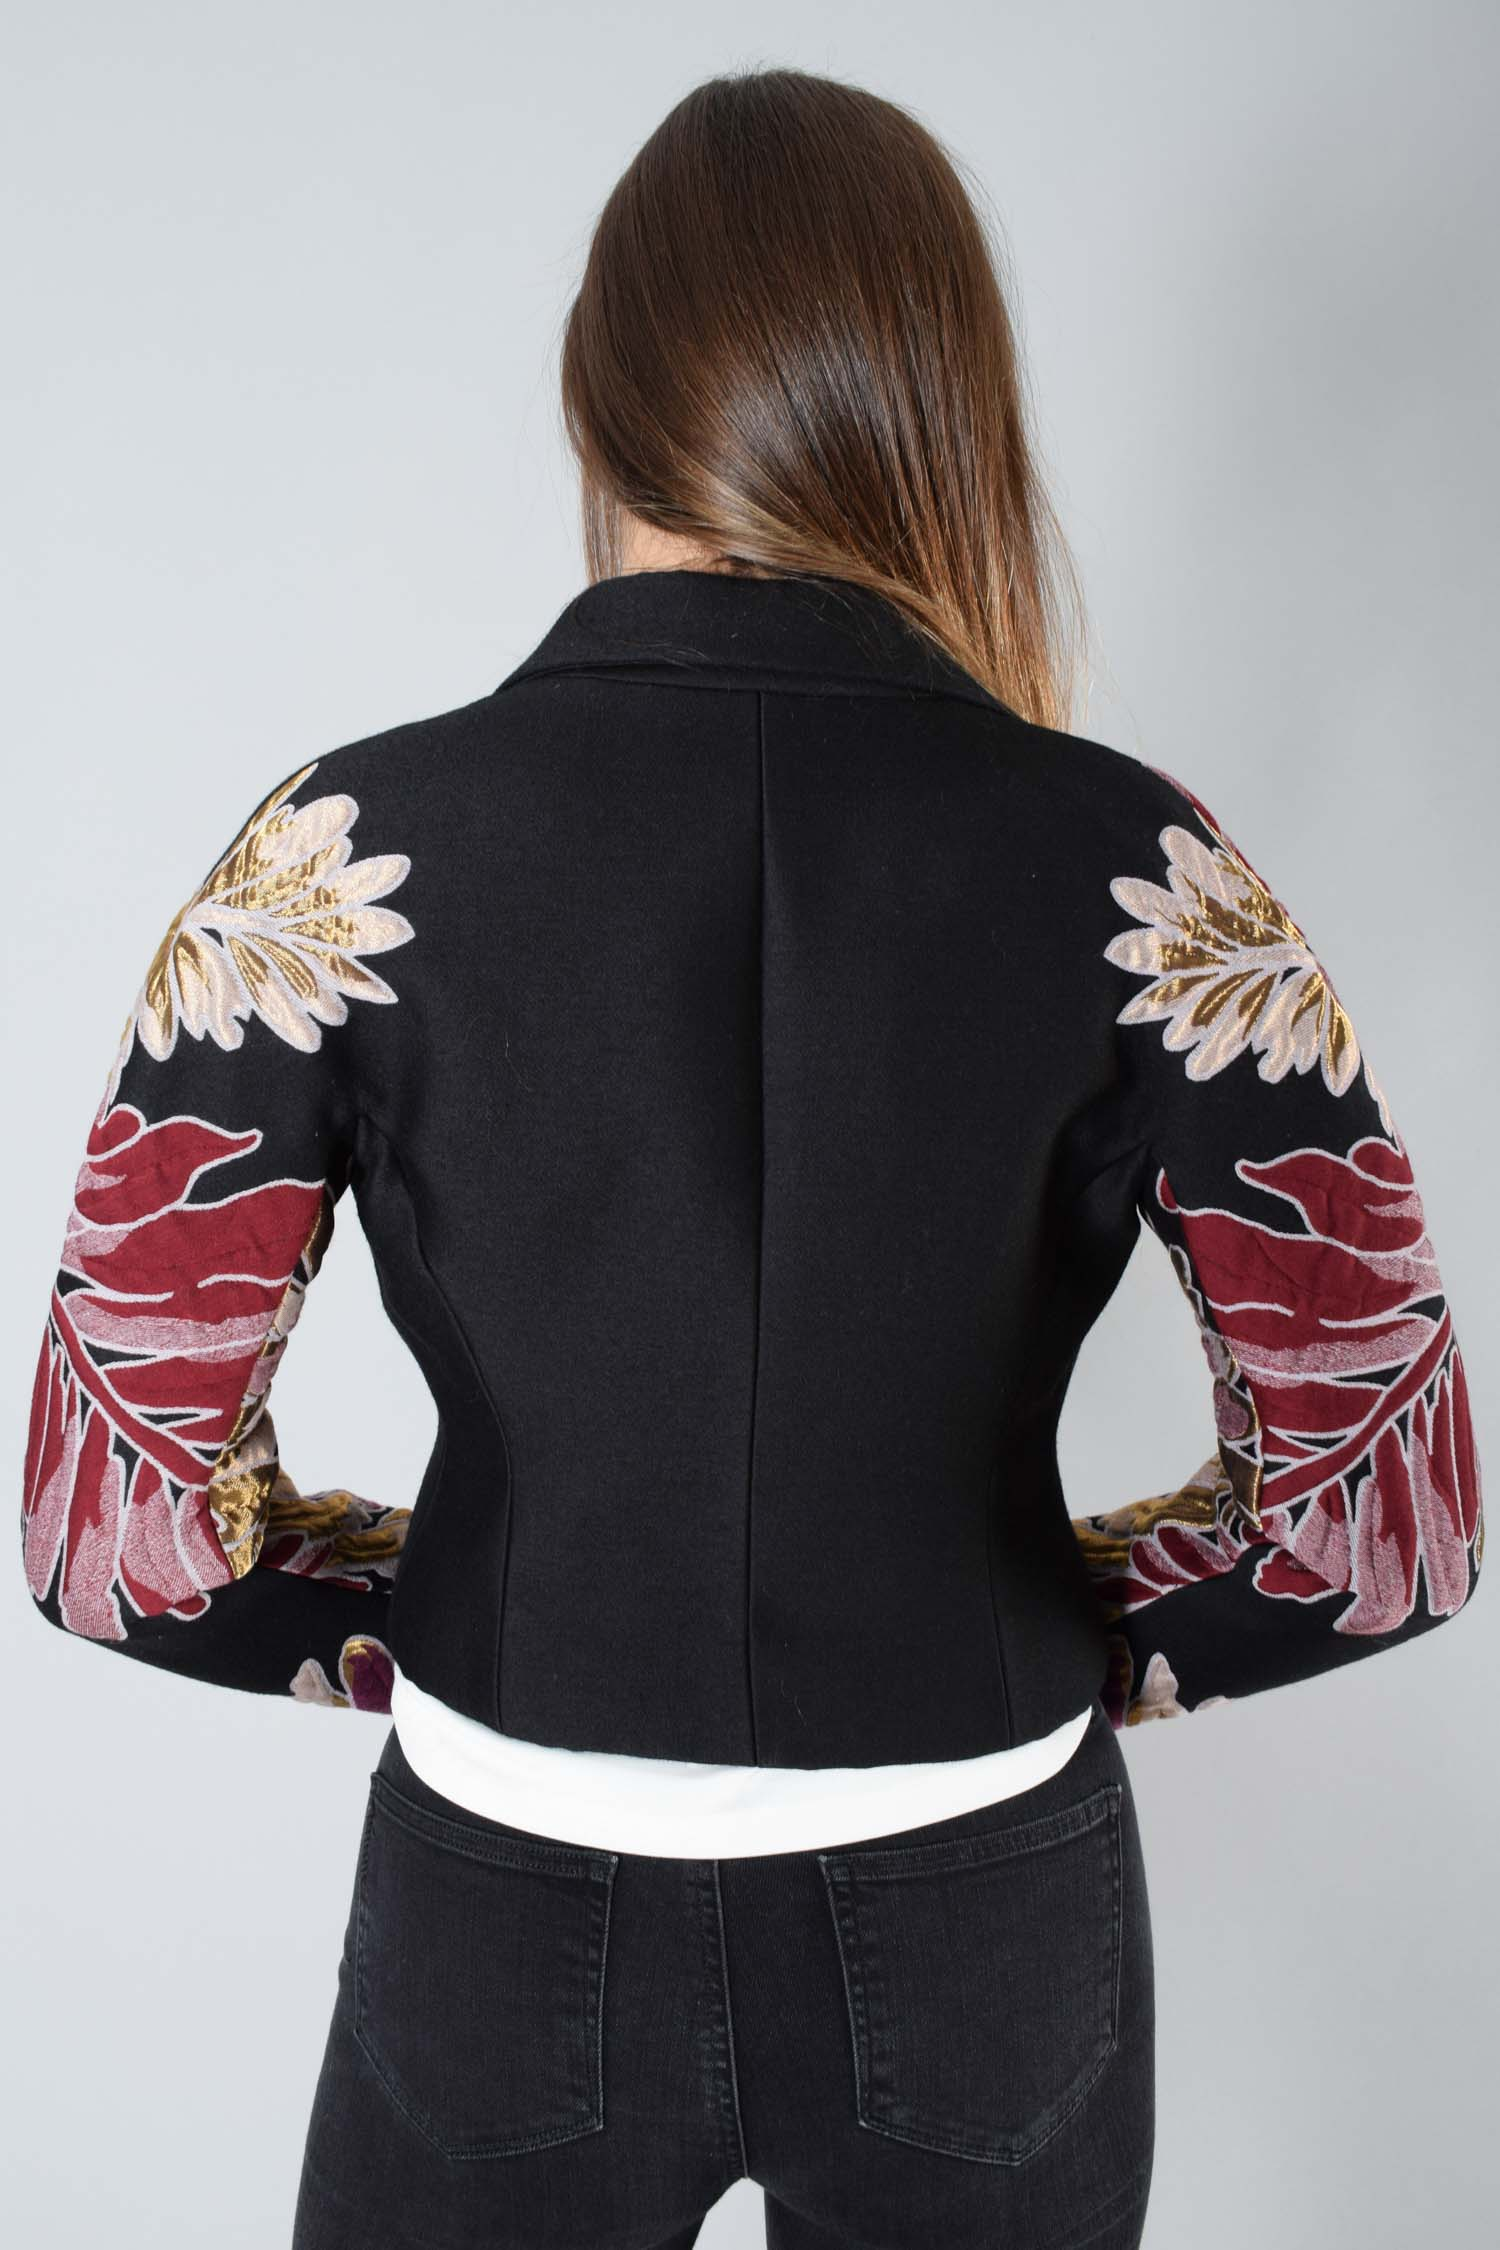 Gucci Black Floral Sleeves Jacket Size 36